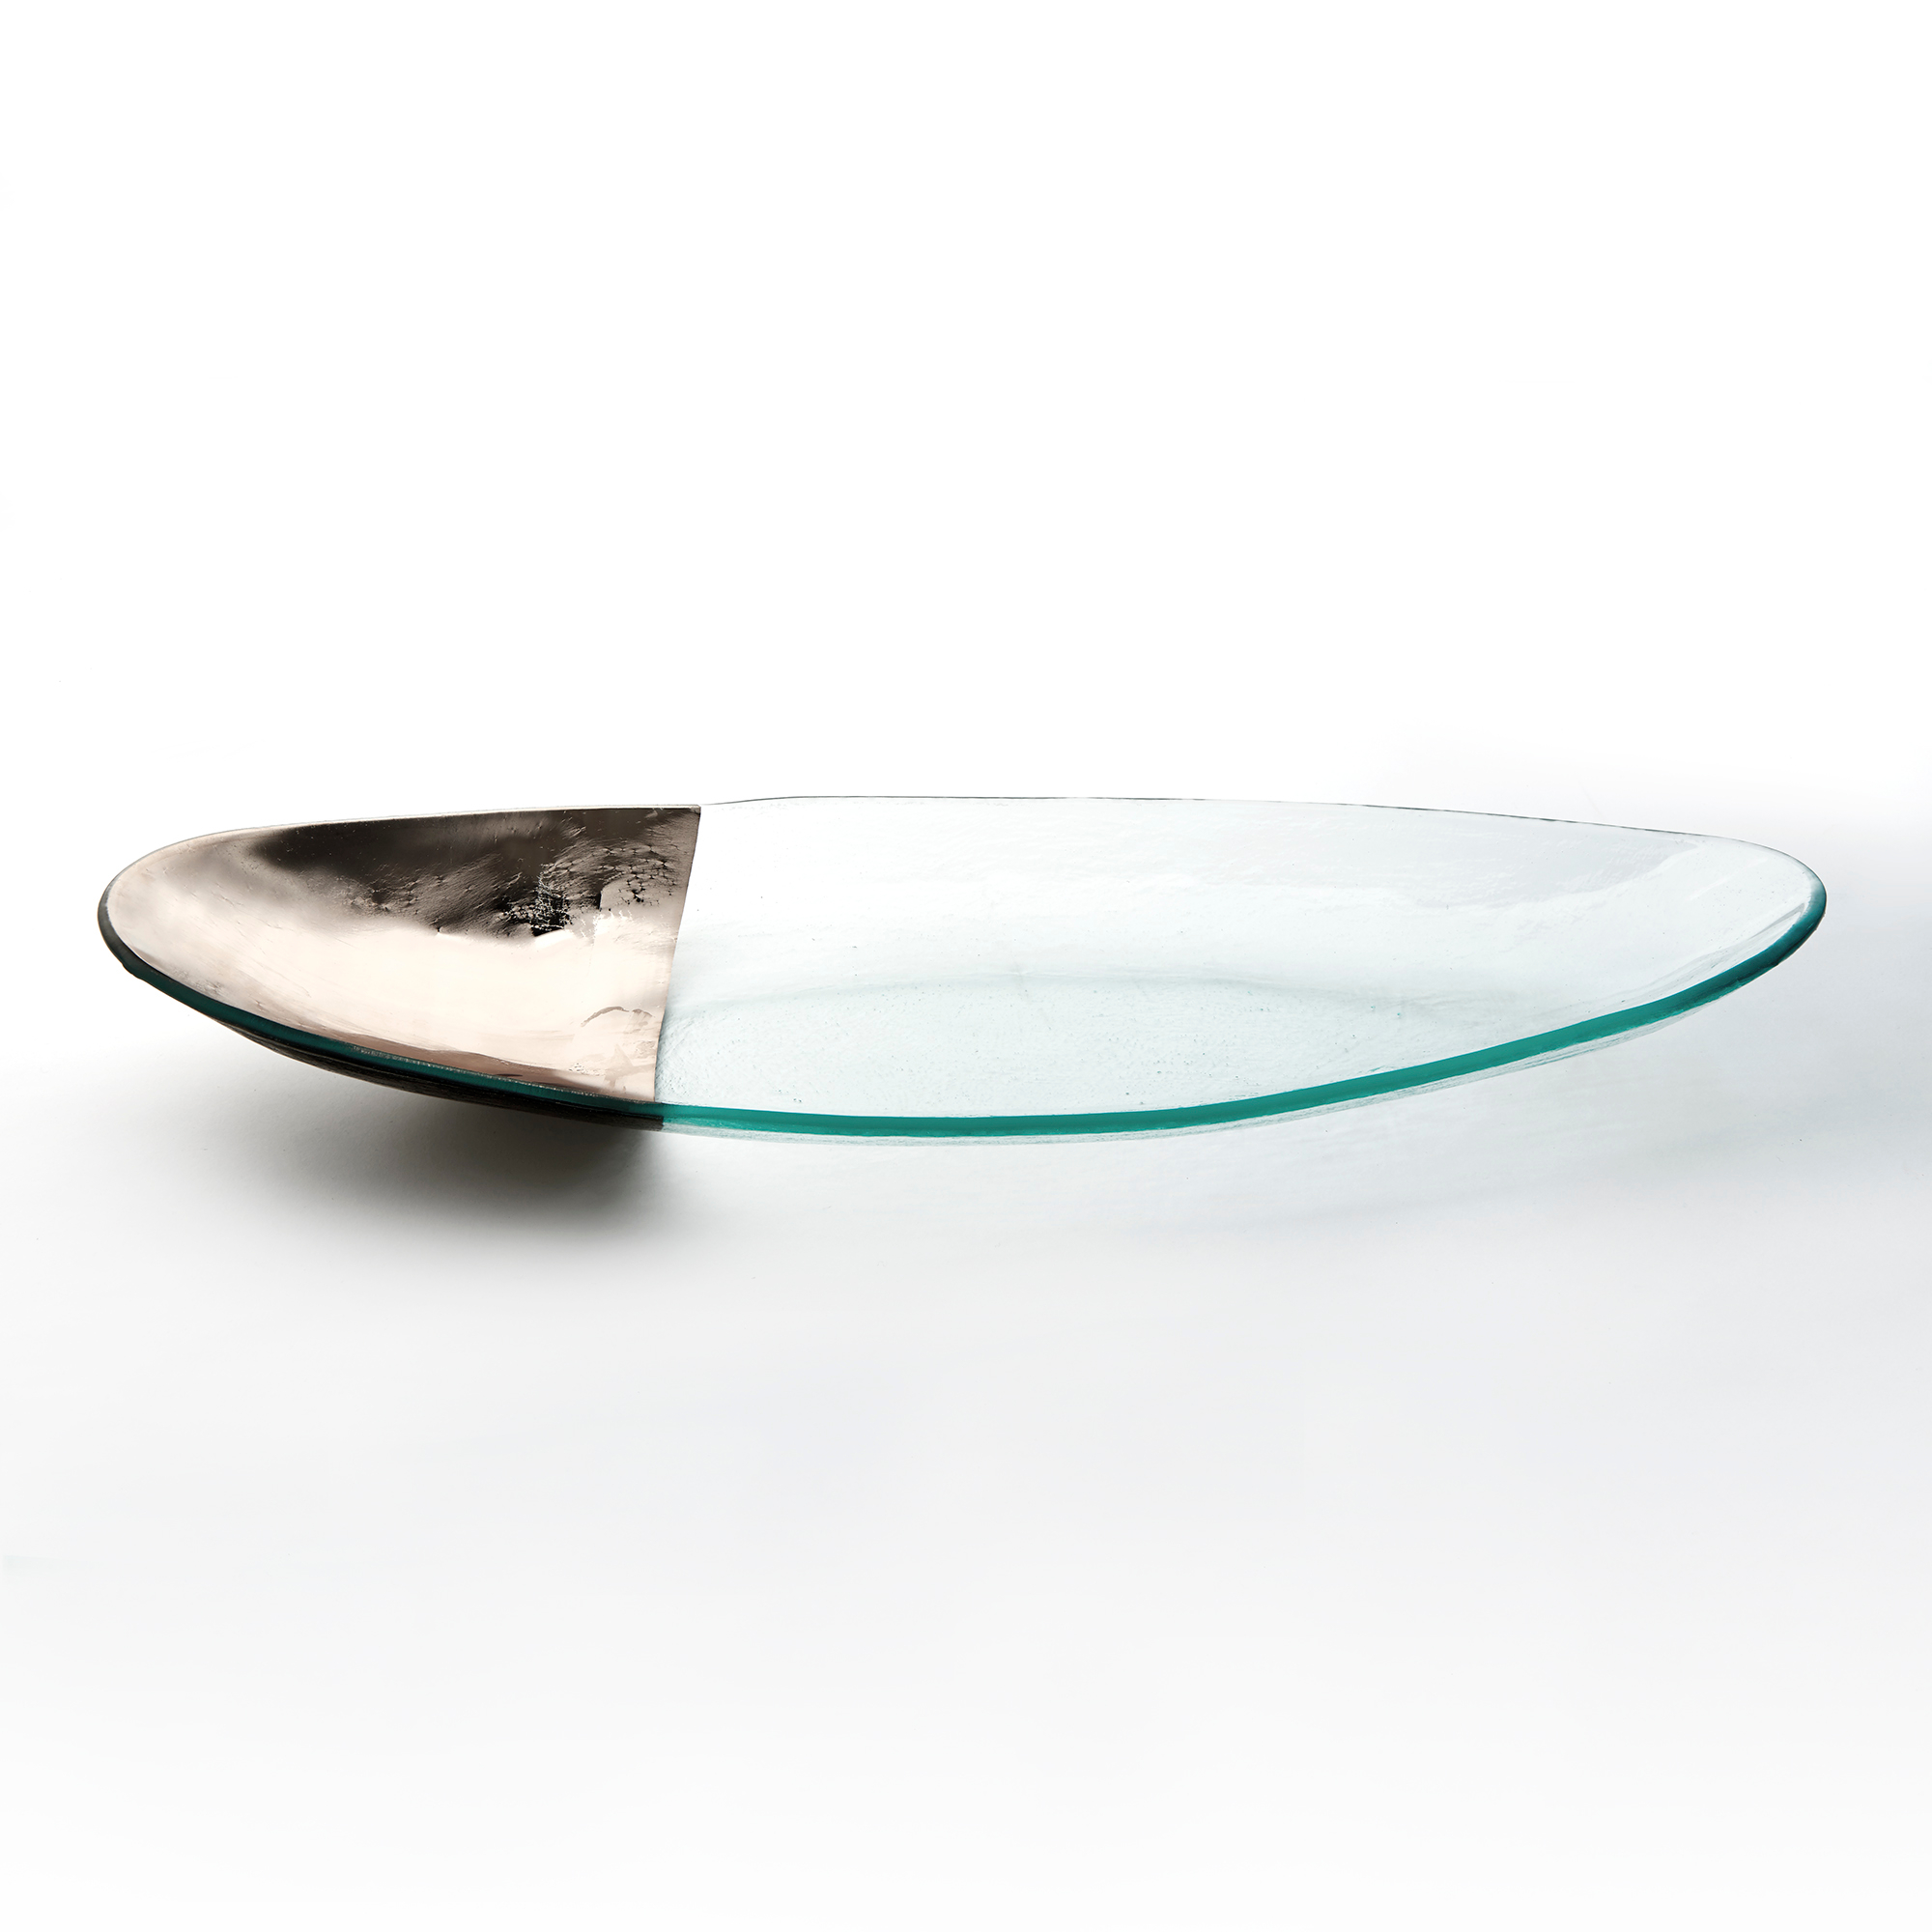 Annieglass Platinum-Tipped Mod Oval Platter, Large